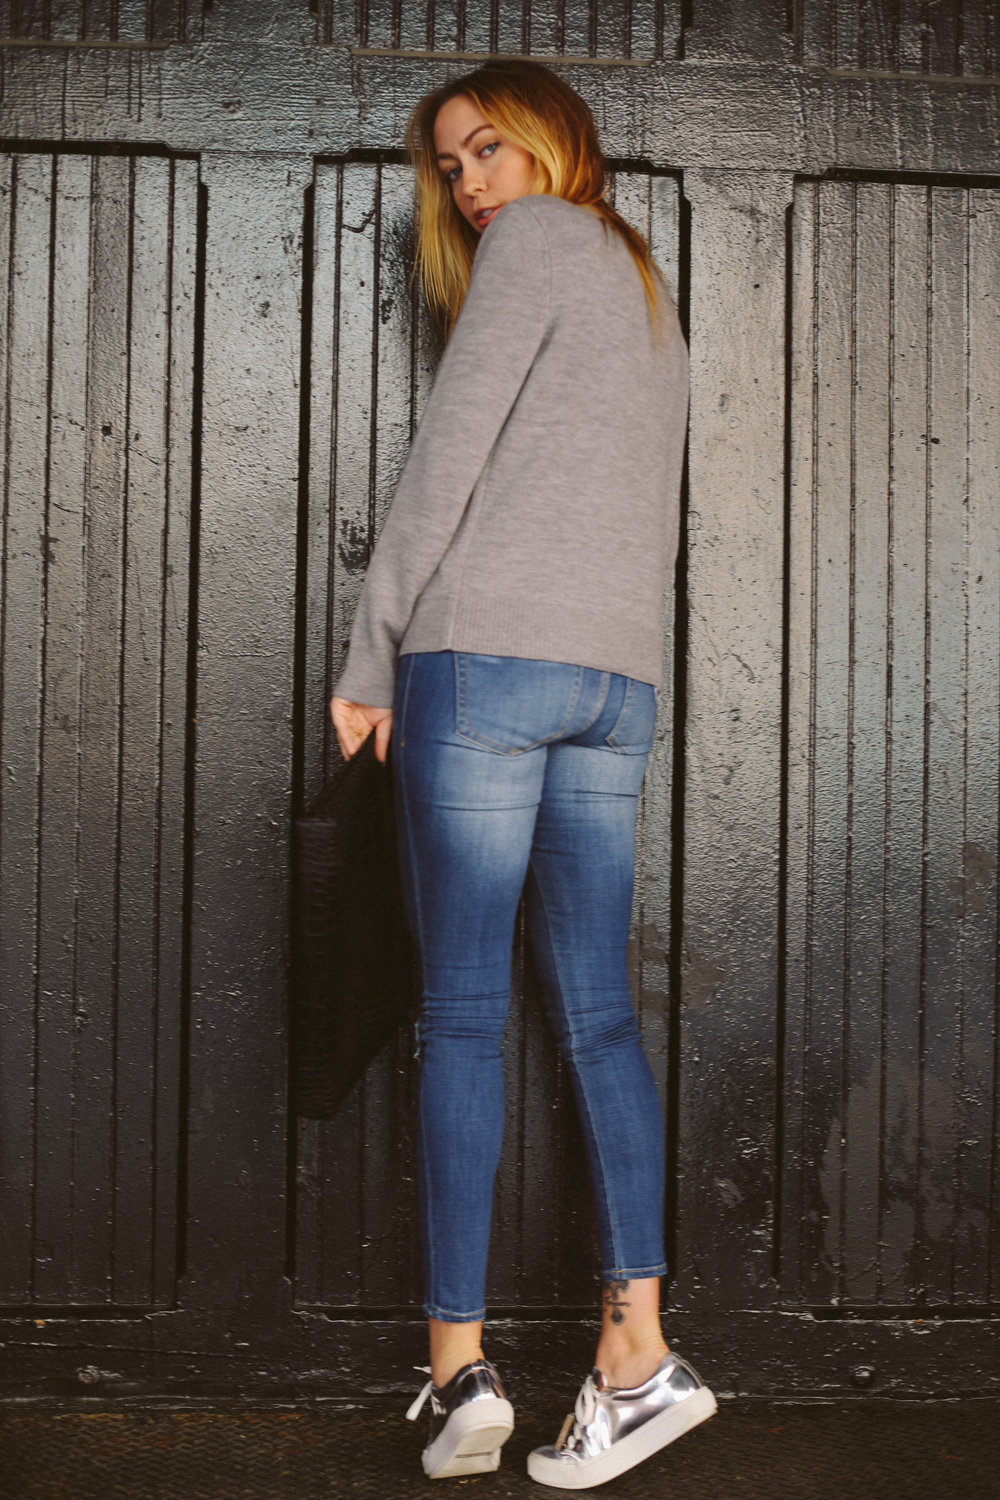 Sweater - A.L.C. | Jeans - Dittos | Sneaks - Acne | Bag - Little Liffner | Choker - Eddie Borgo || photos by Susannah Brittany